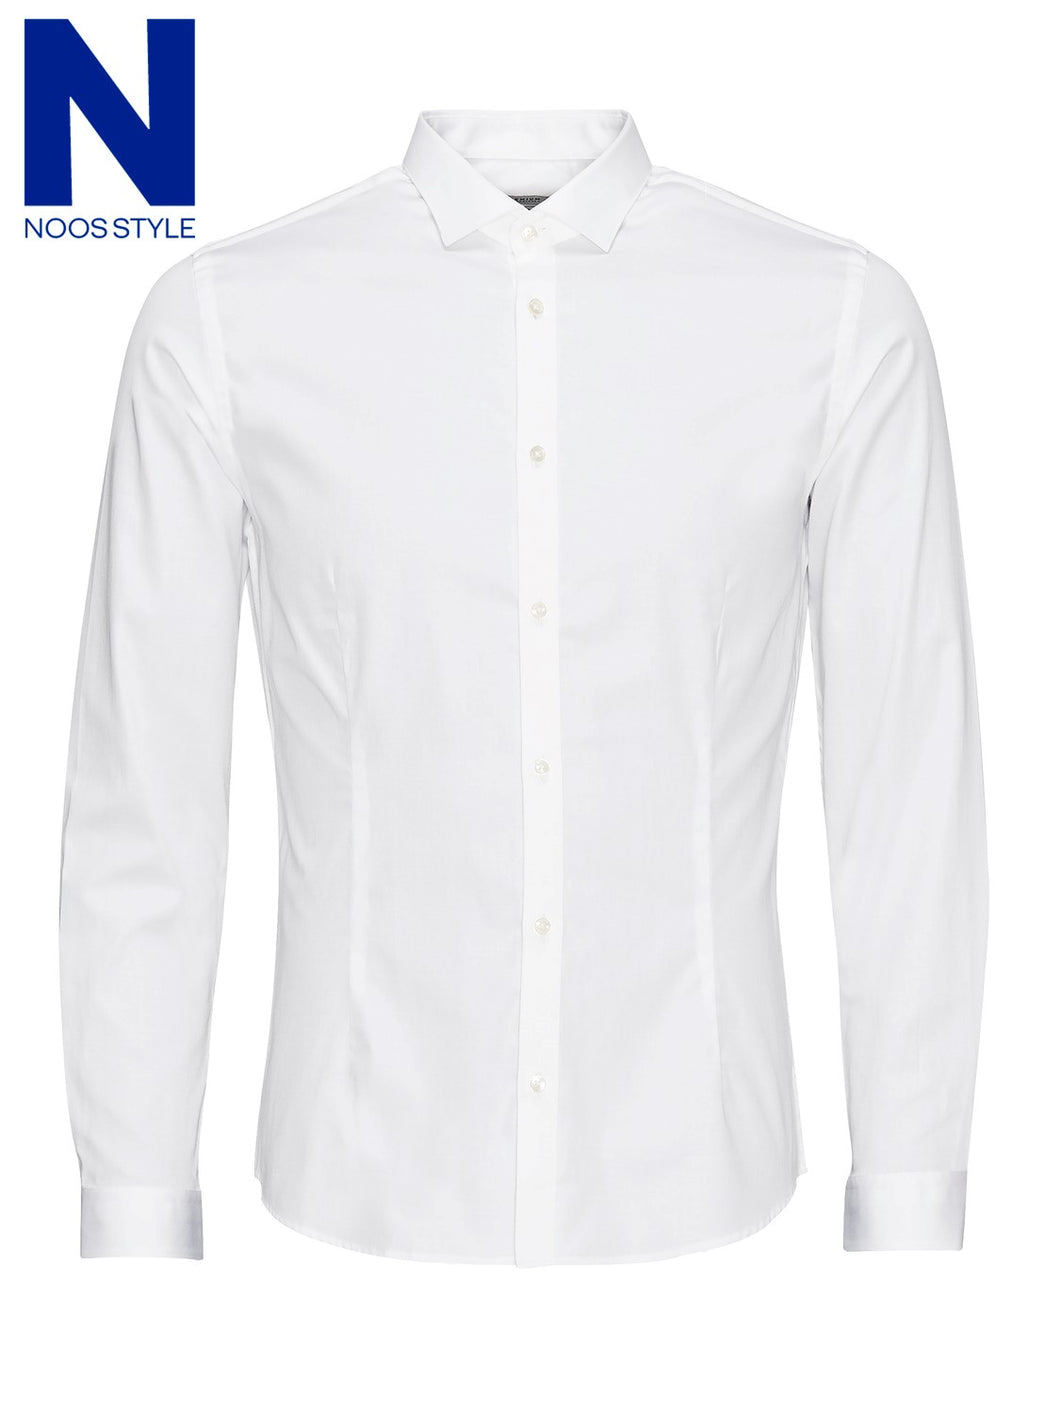 Blouse LM Parma 12097662 White